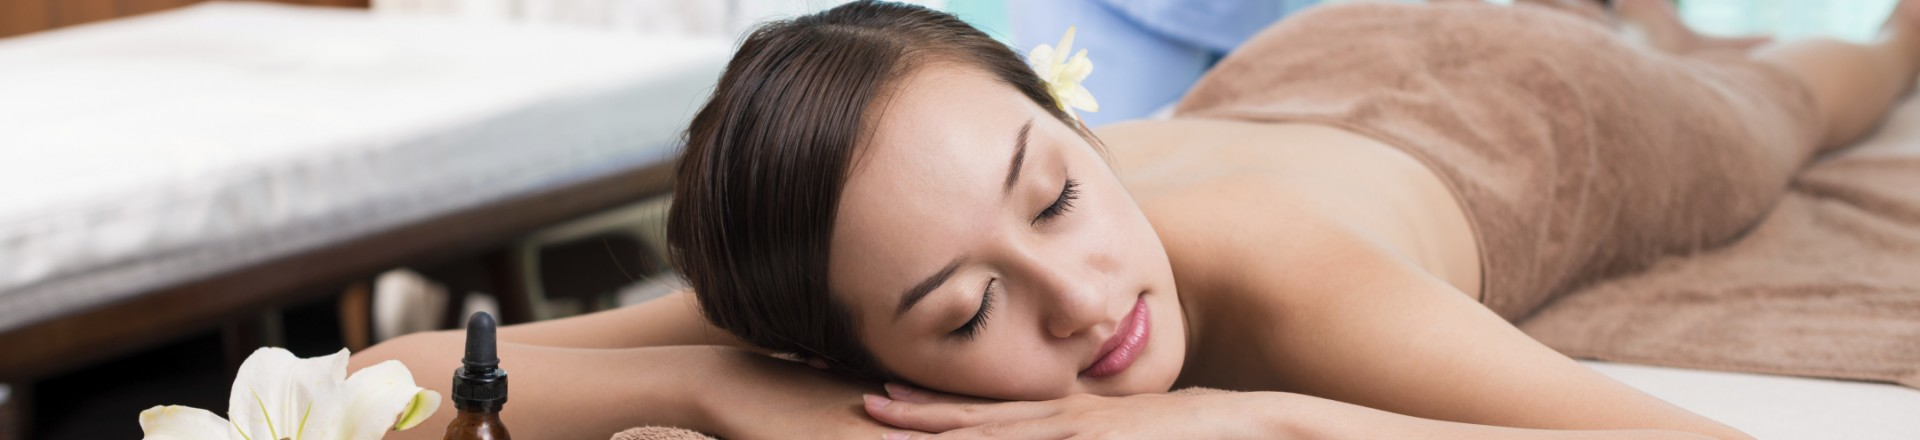 Ayurvedic Body Massage in Ludhiana